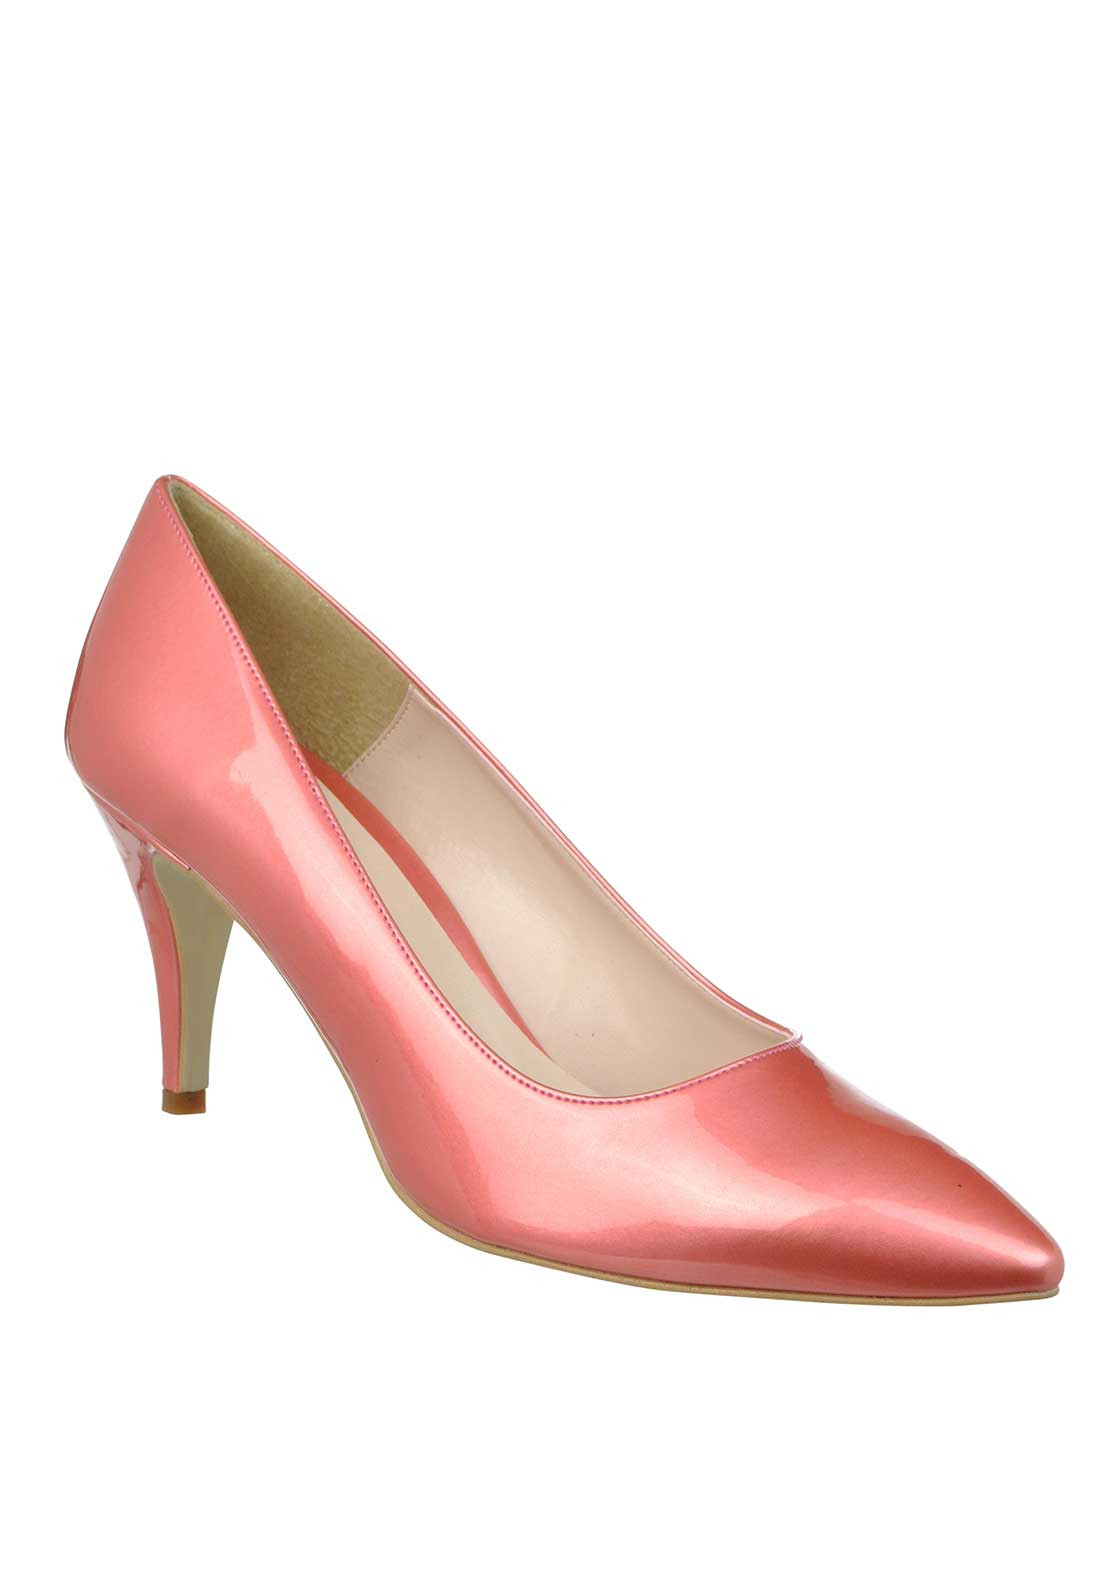 McElhinney's Patent Pointed Toe Low Heeled Shoes, Pink